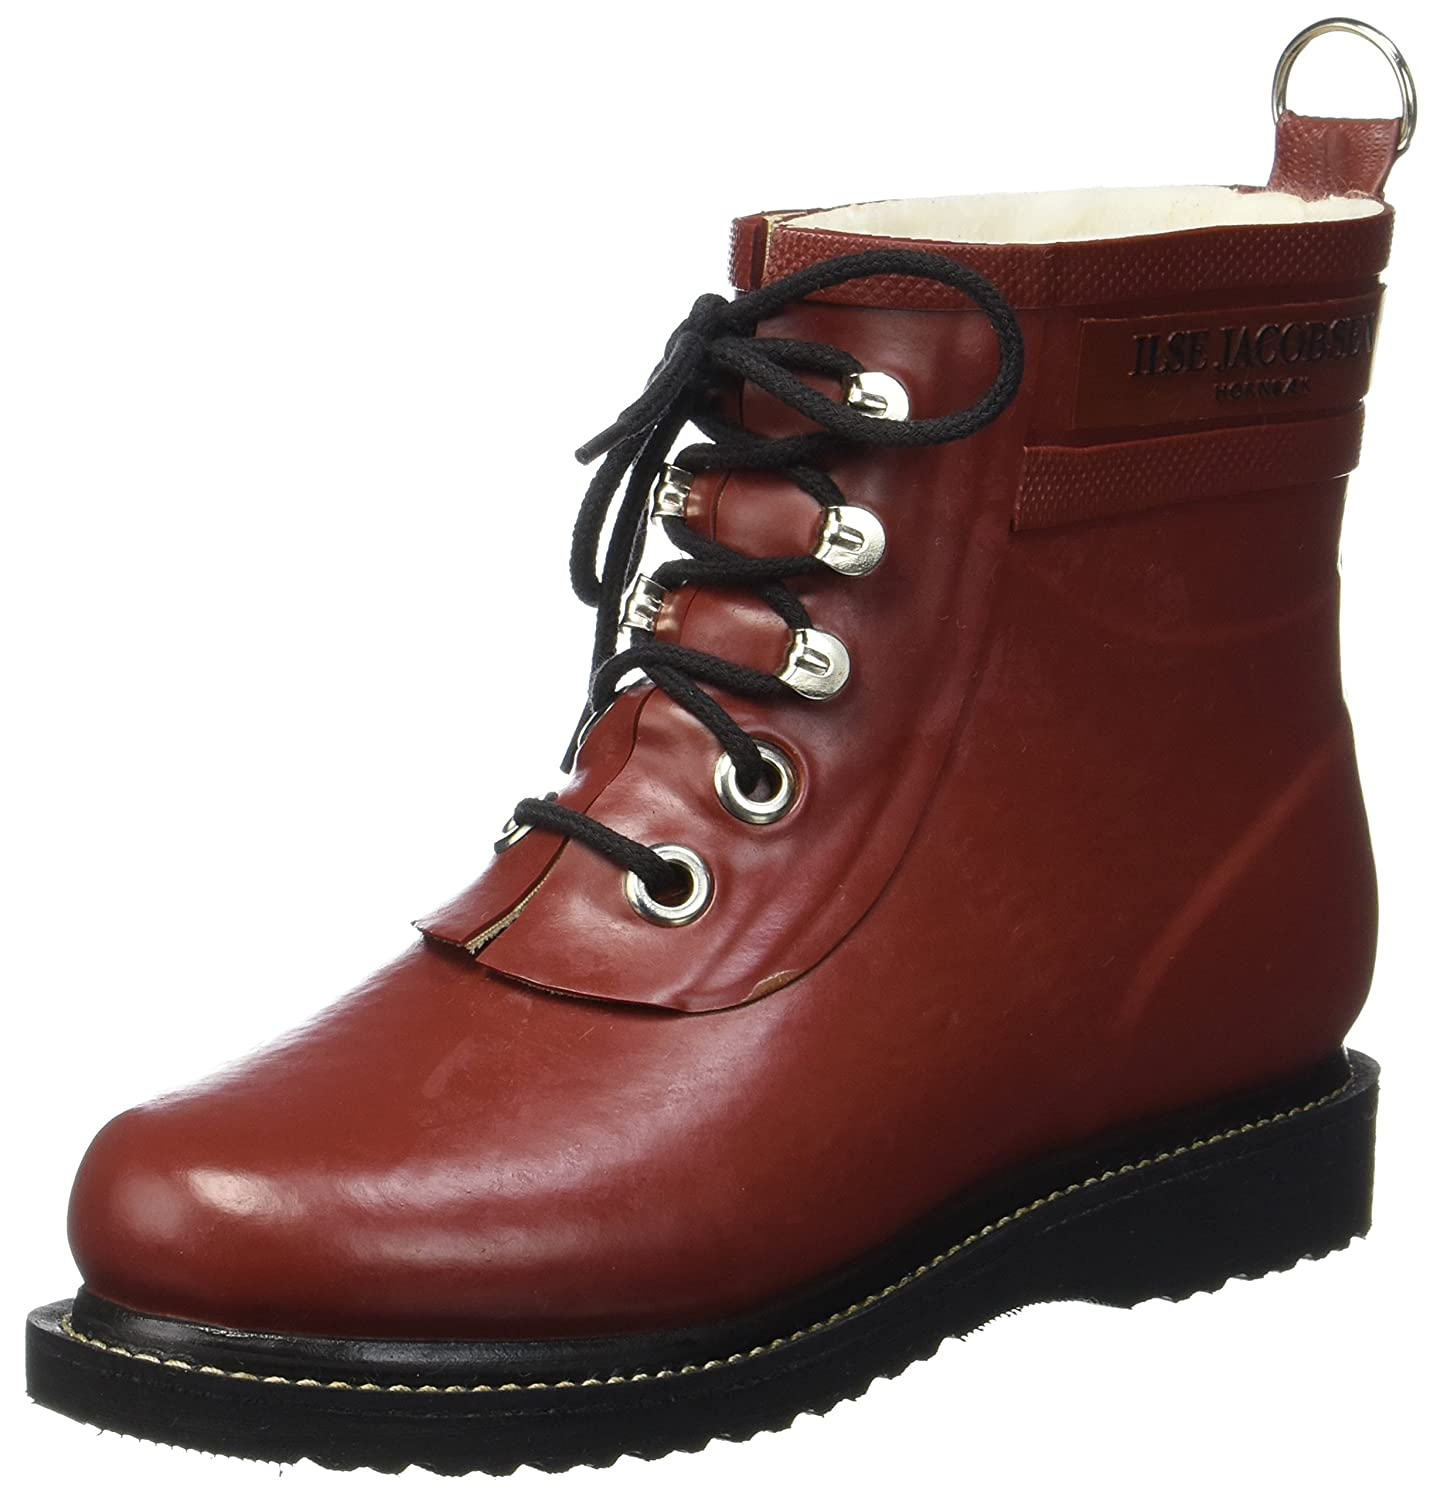 ILSE JACOBSEN Womens Rub 2 Rubber Boots B0725P9ZYX 40 EU (10-10.5 B(M) US Women)|Red (Stein Red)